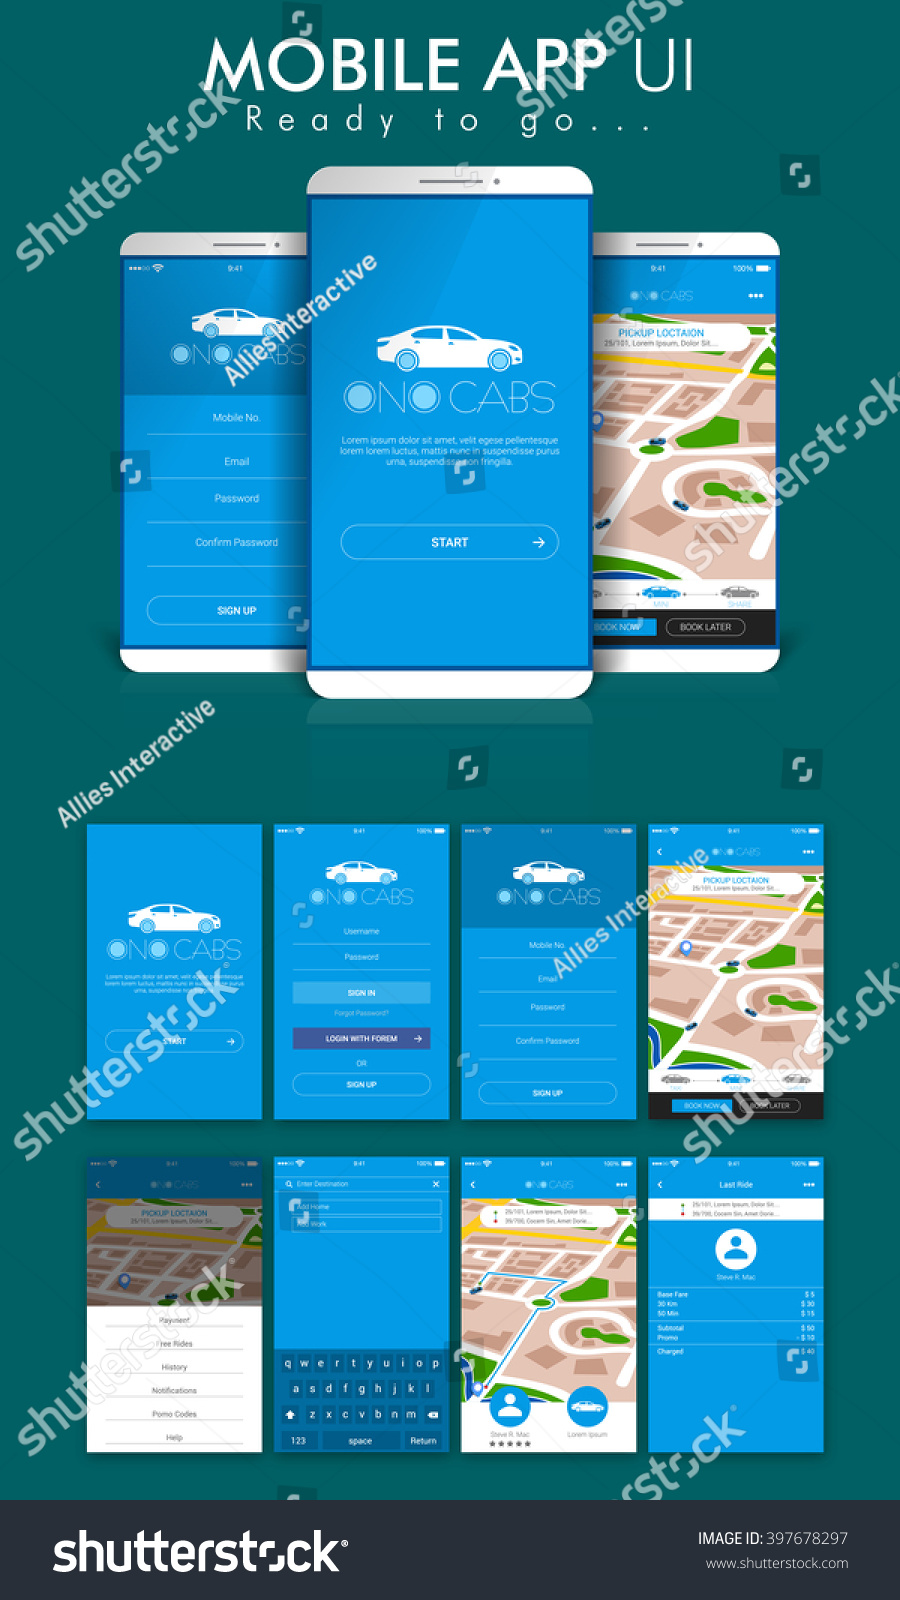 Online Cab Mobile App Material Design Ui Ux And Gui Screens Including Sign Up